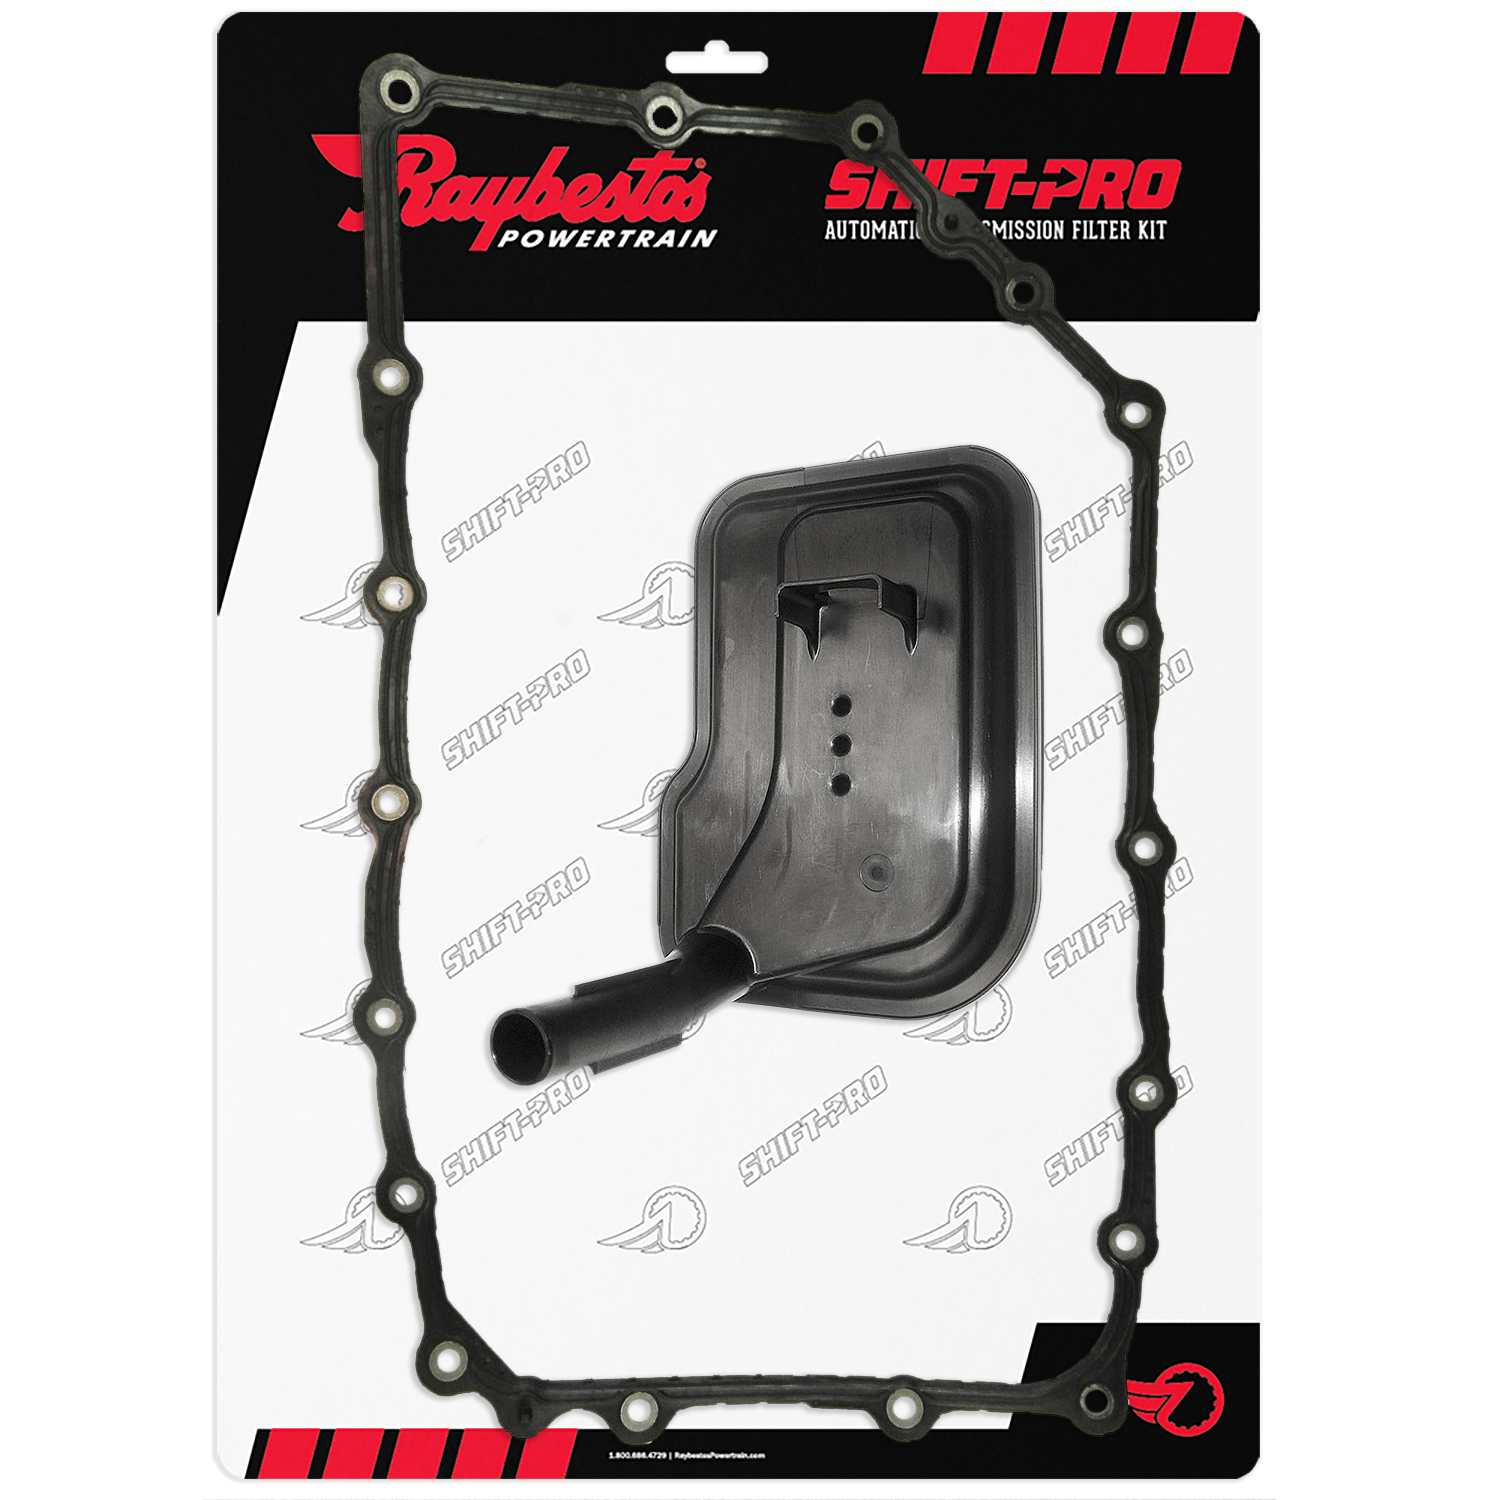 6L80 (2WD & 4WD) Transmission Filter Kit